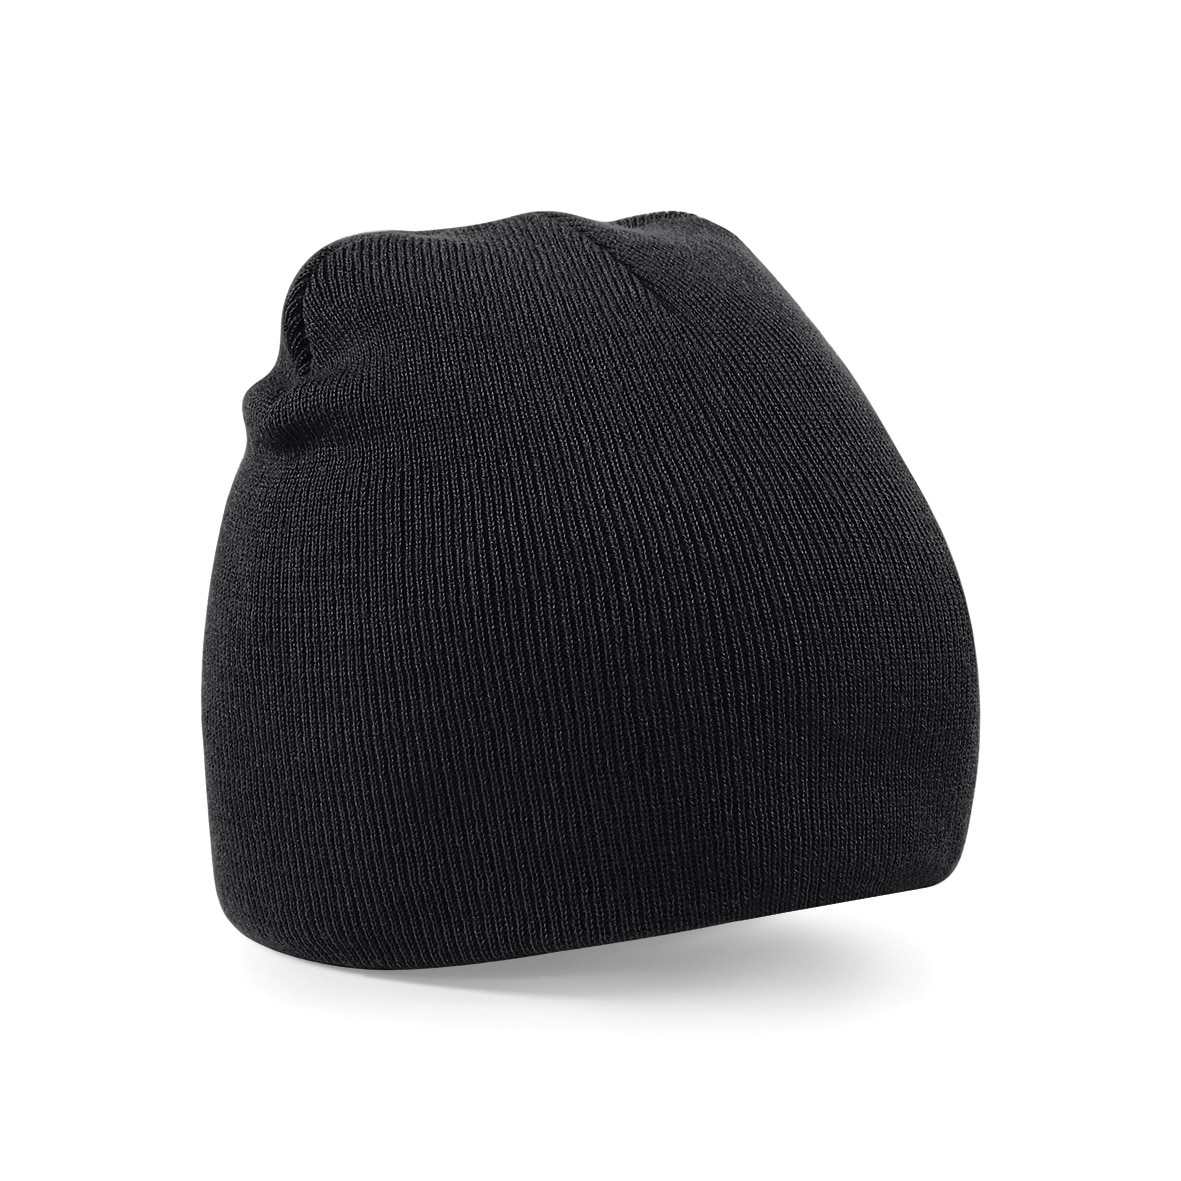 Black Embroidered Personalised Beanies from Jageto Embroidery and Print in Essex, UK